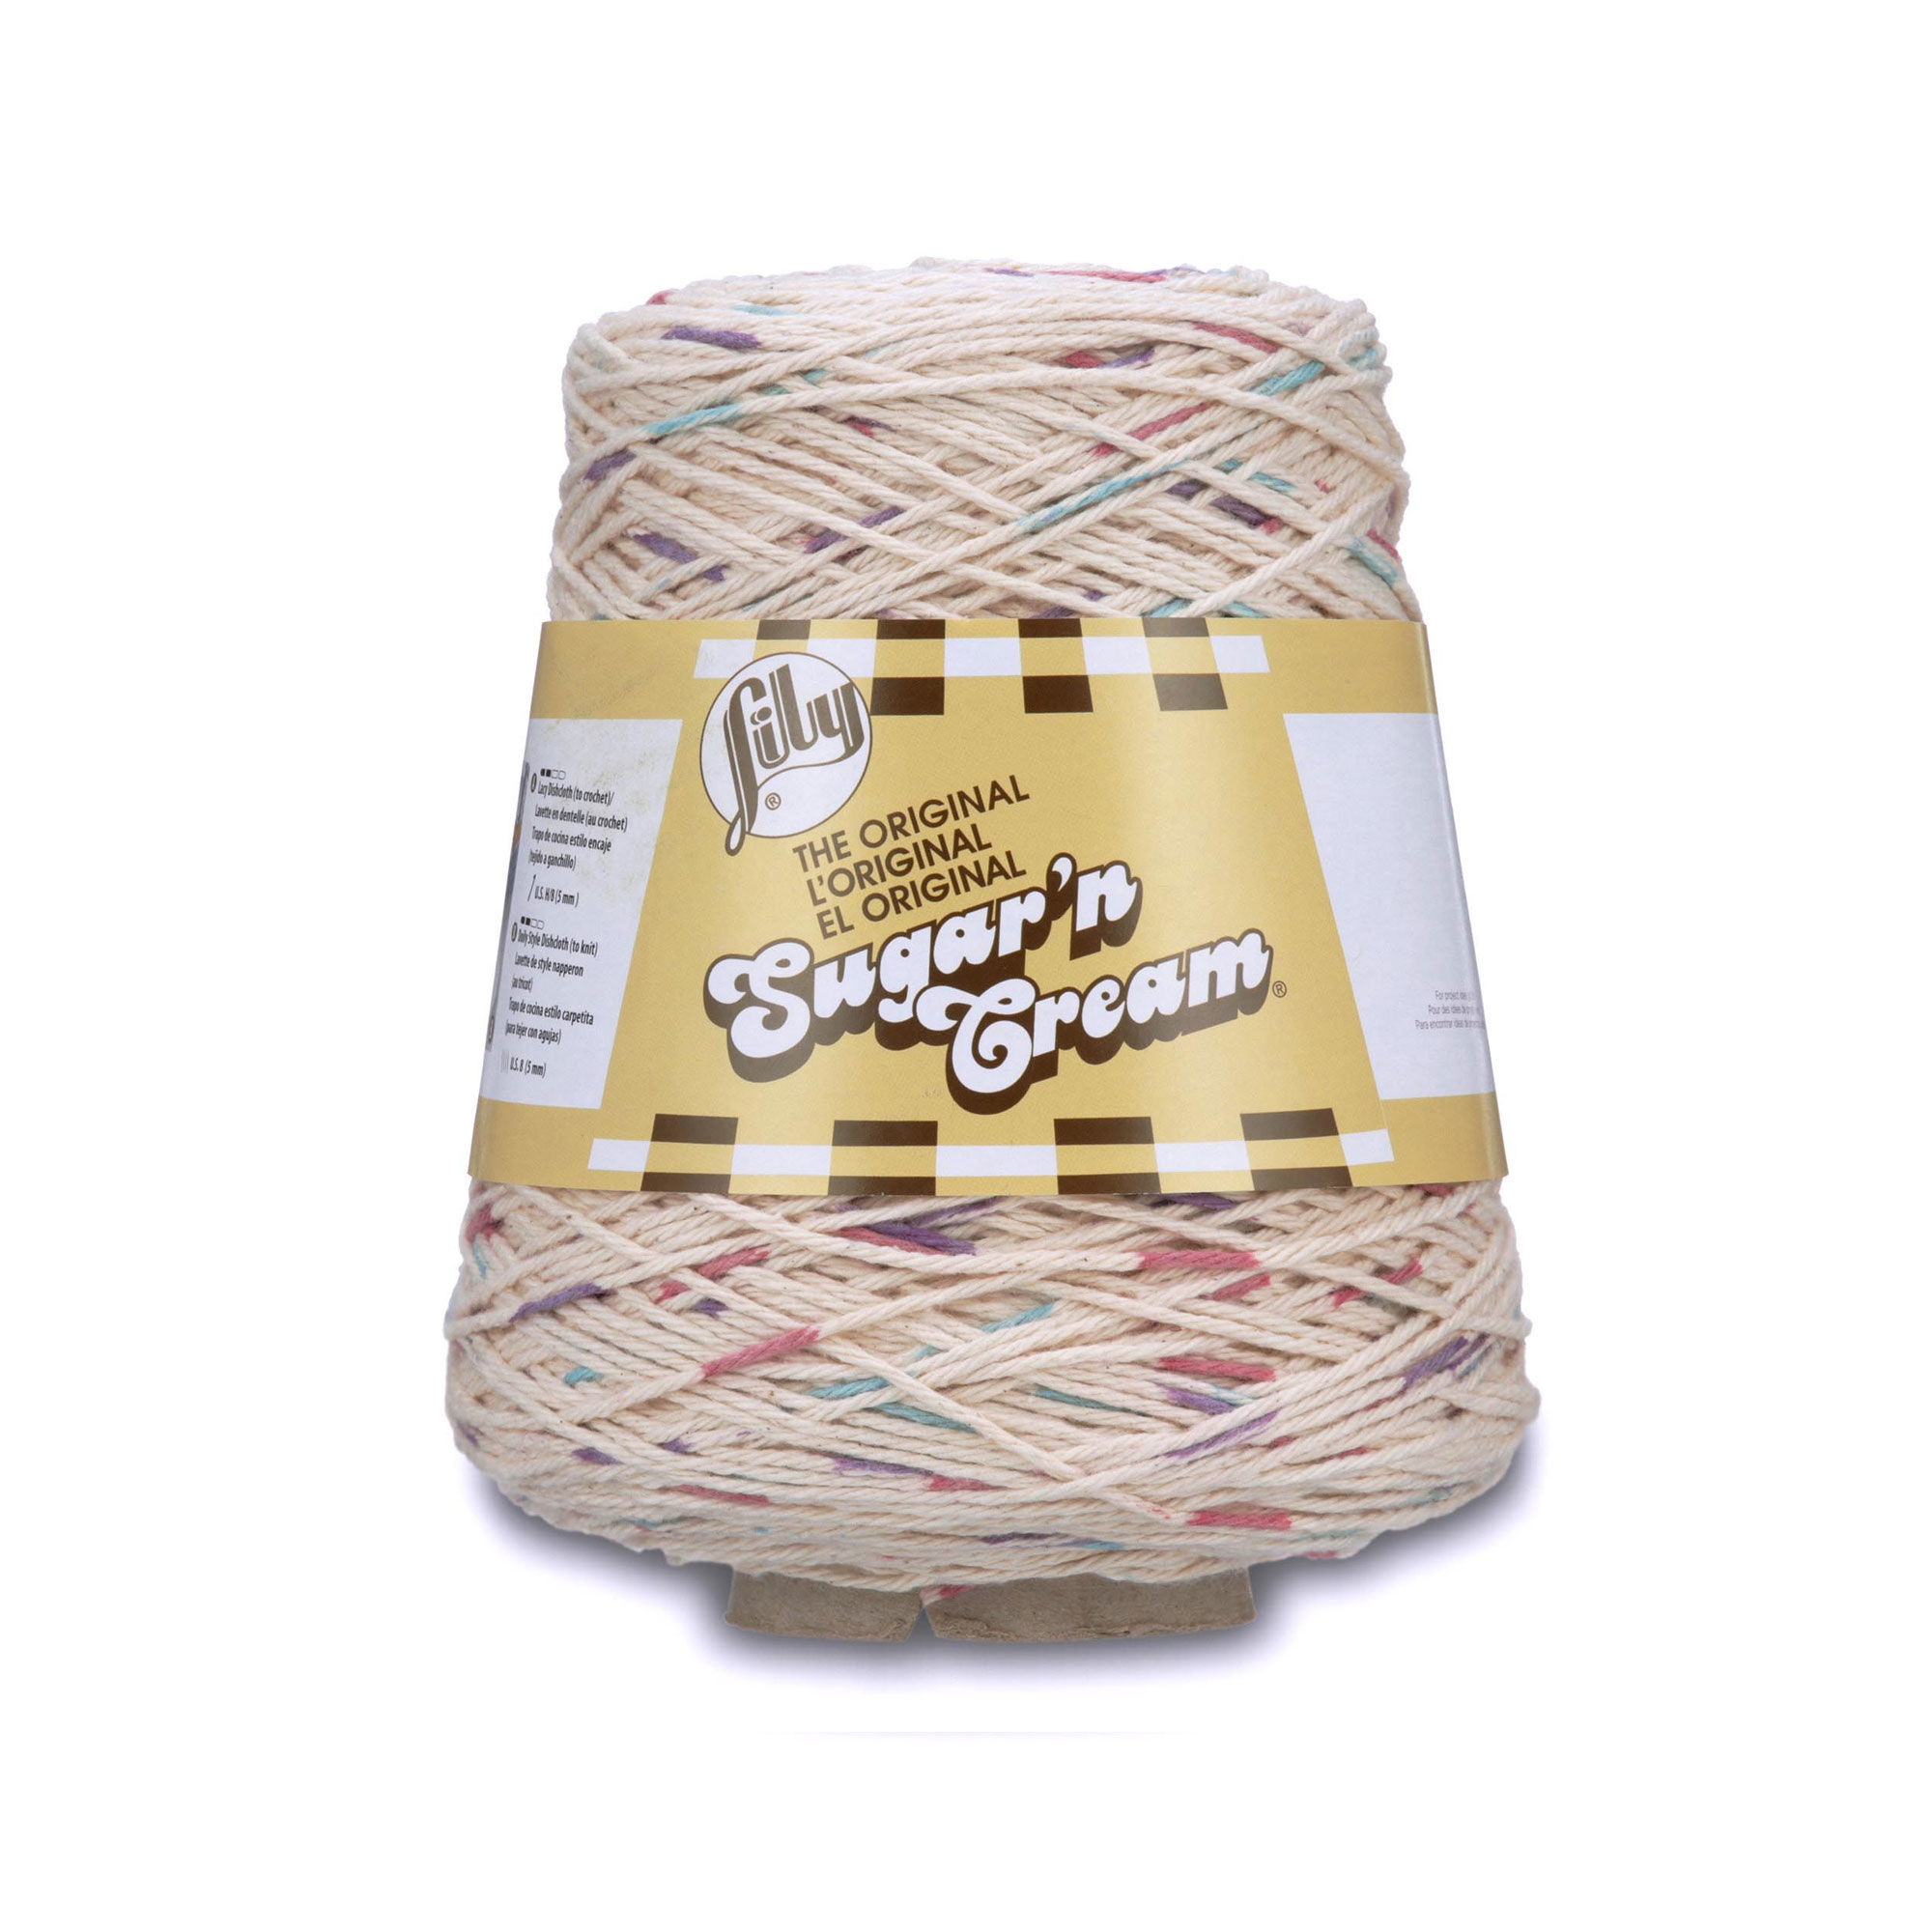 Lily Sugar 'n Cream Cotton Cone Yarn